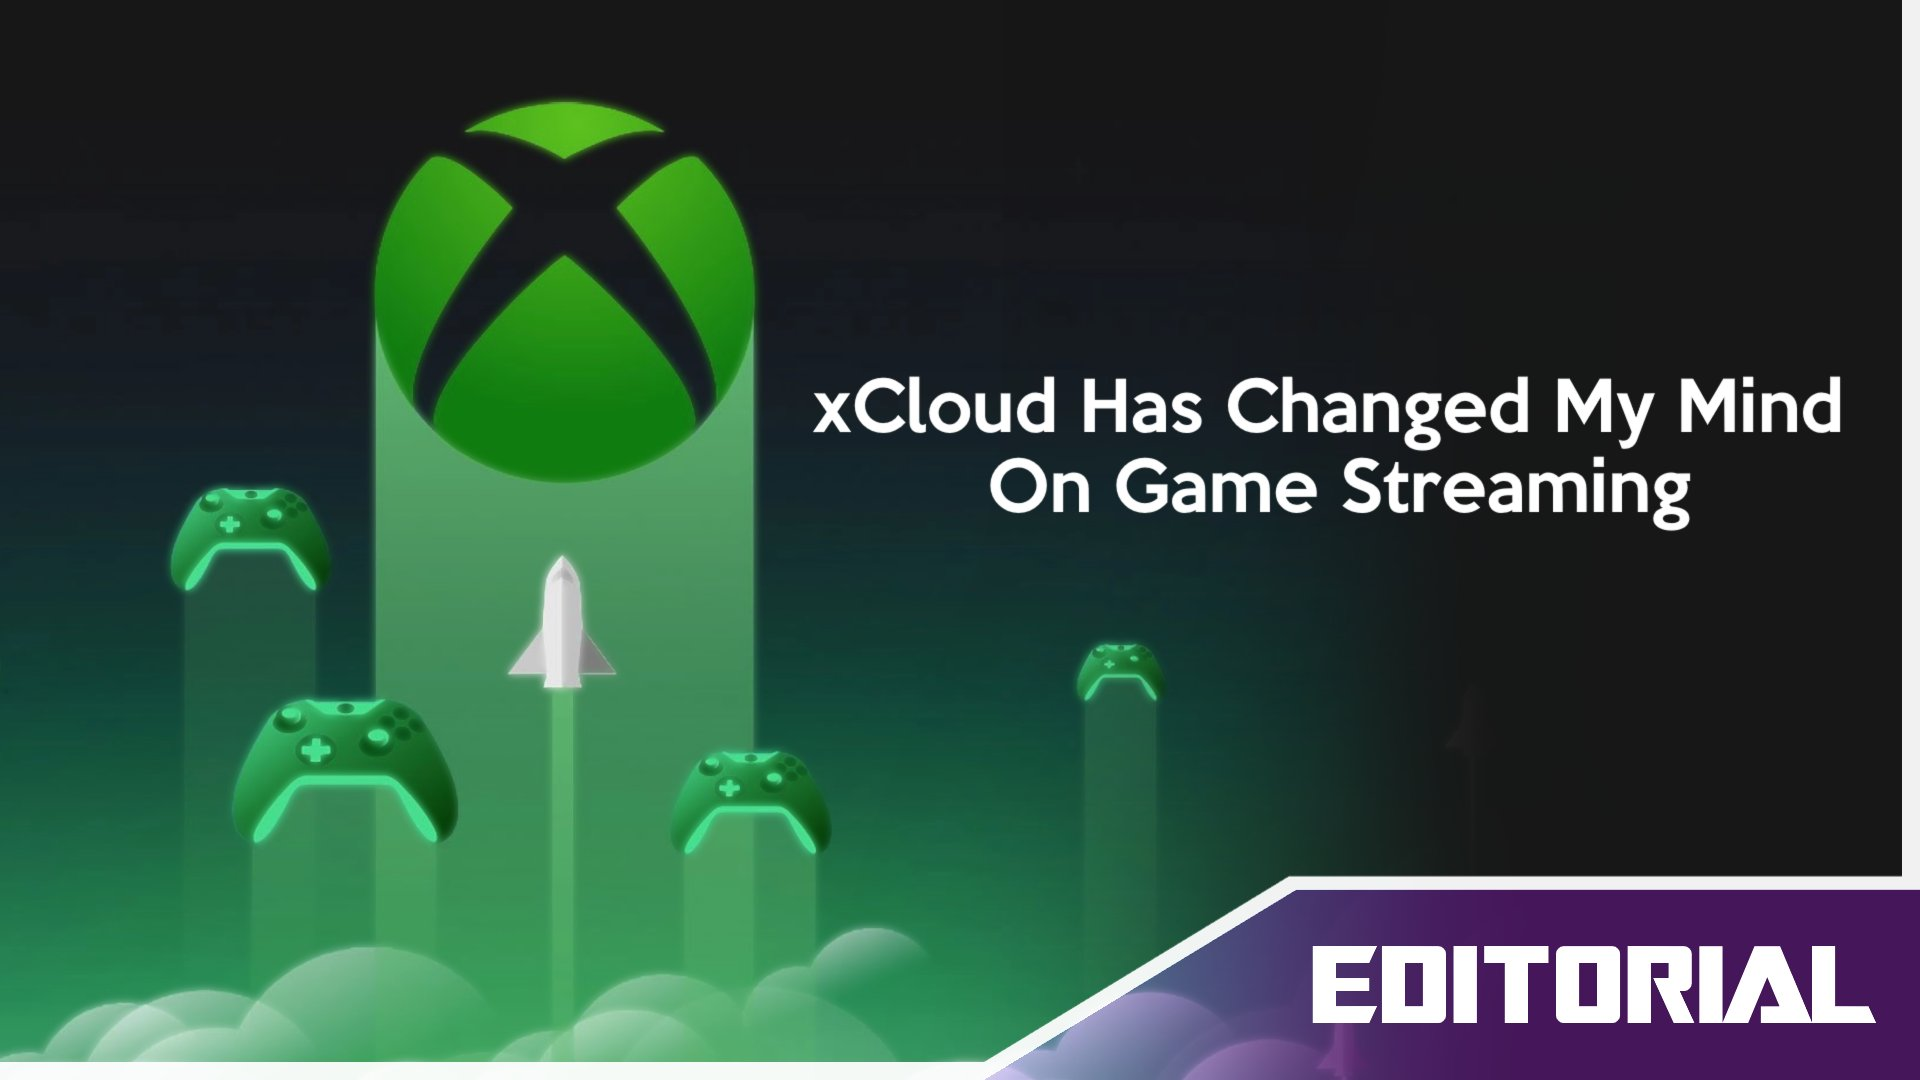 xCloud Has Changed My Mind On Game Streaming